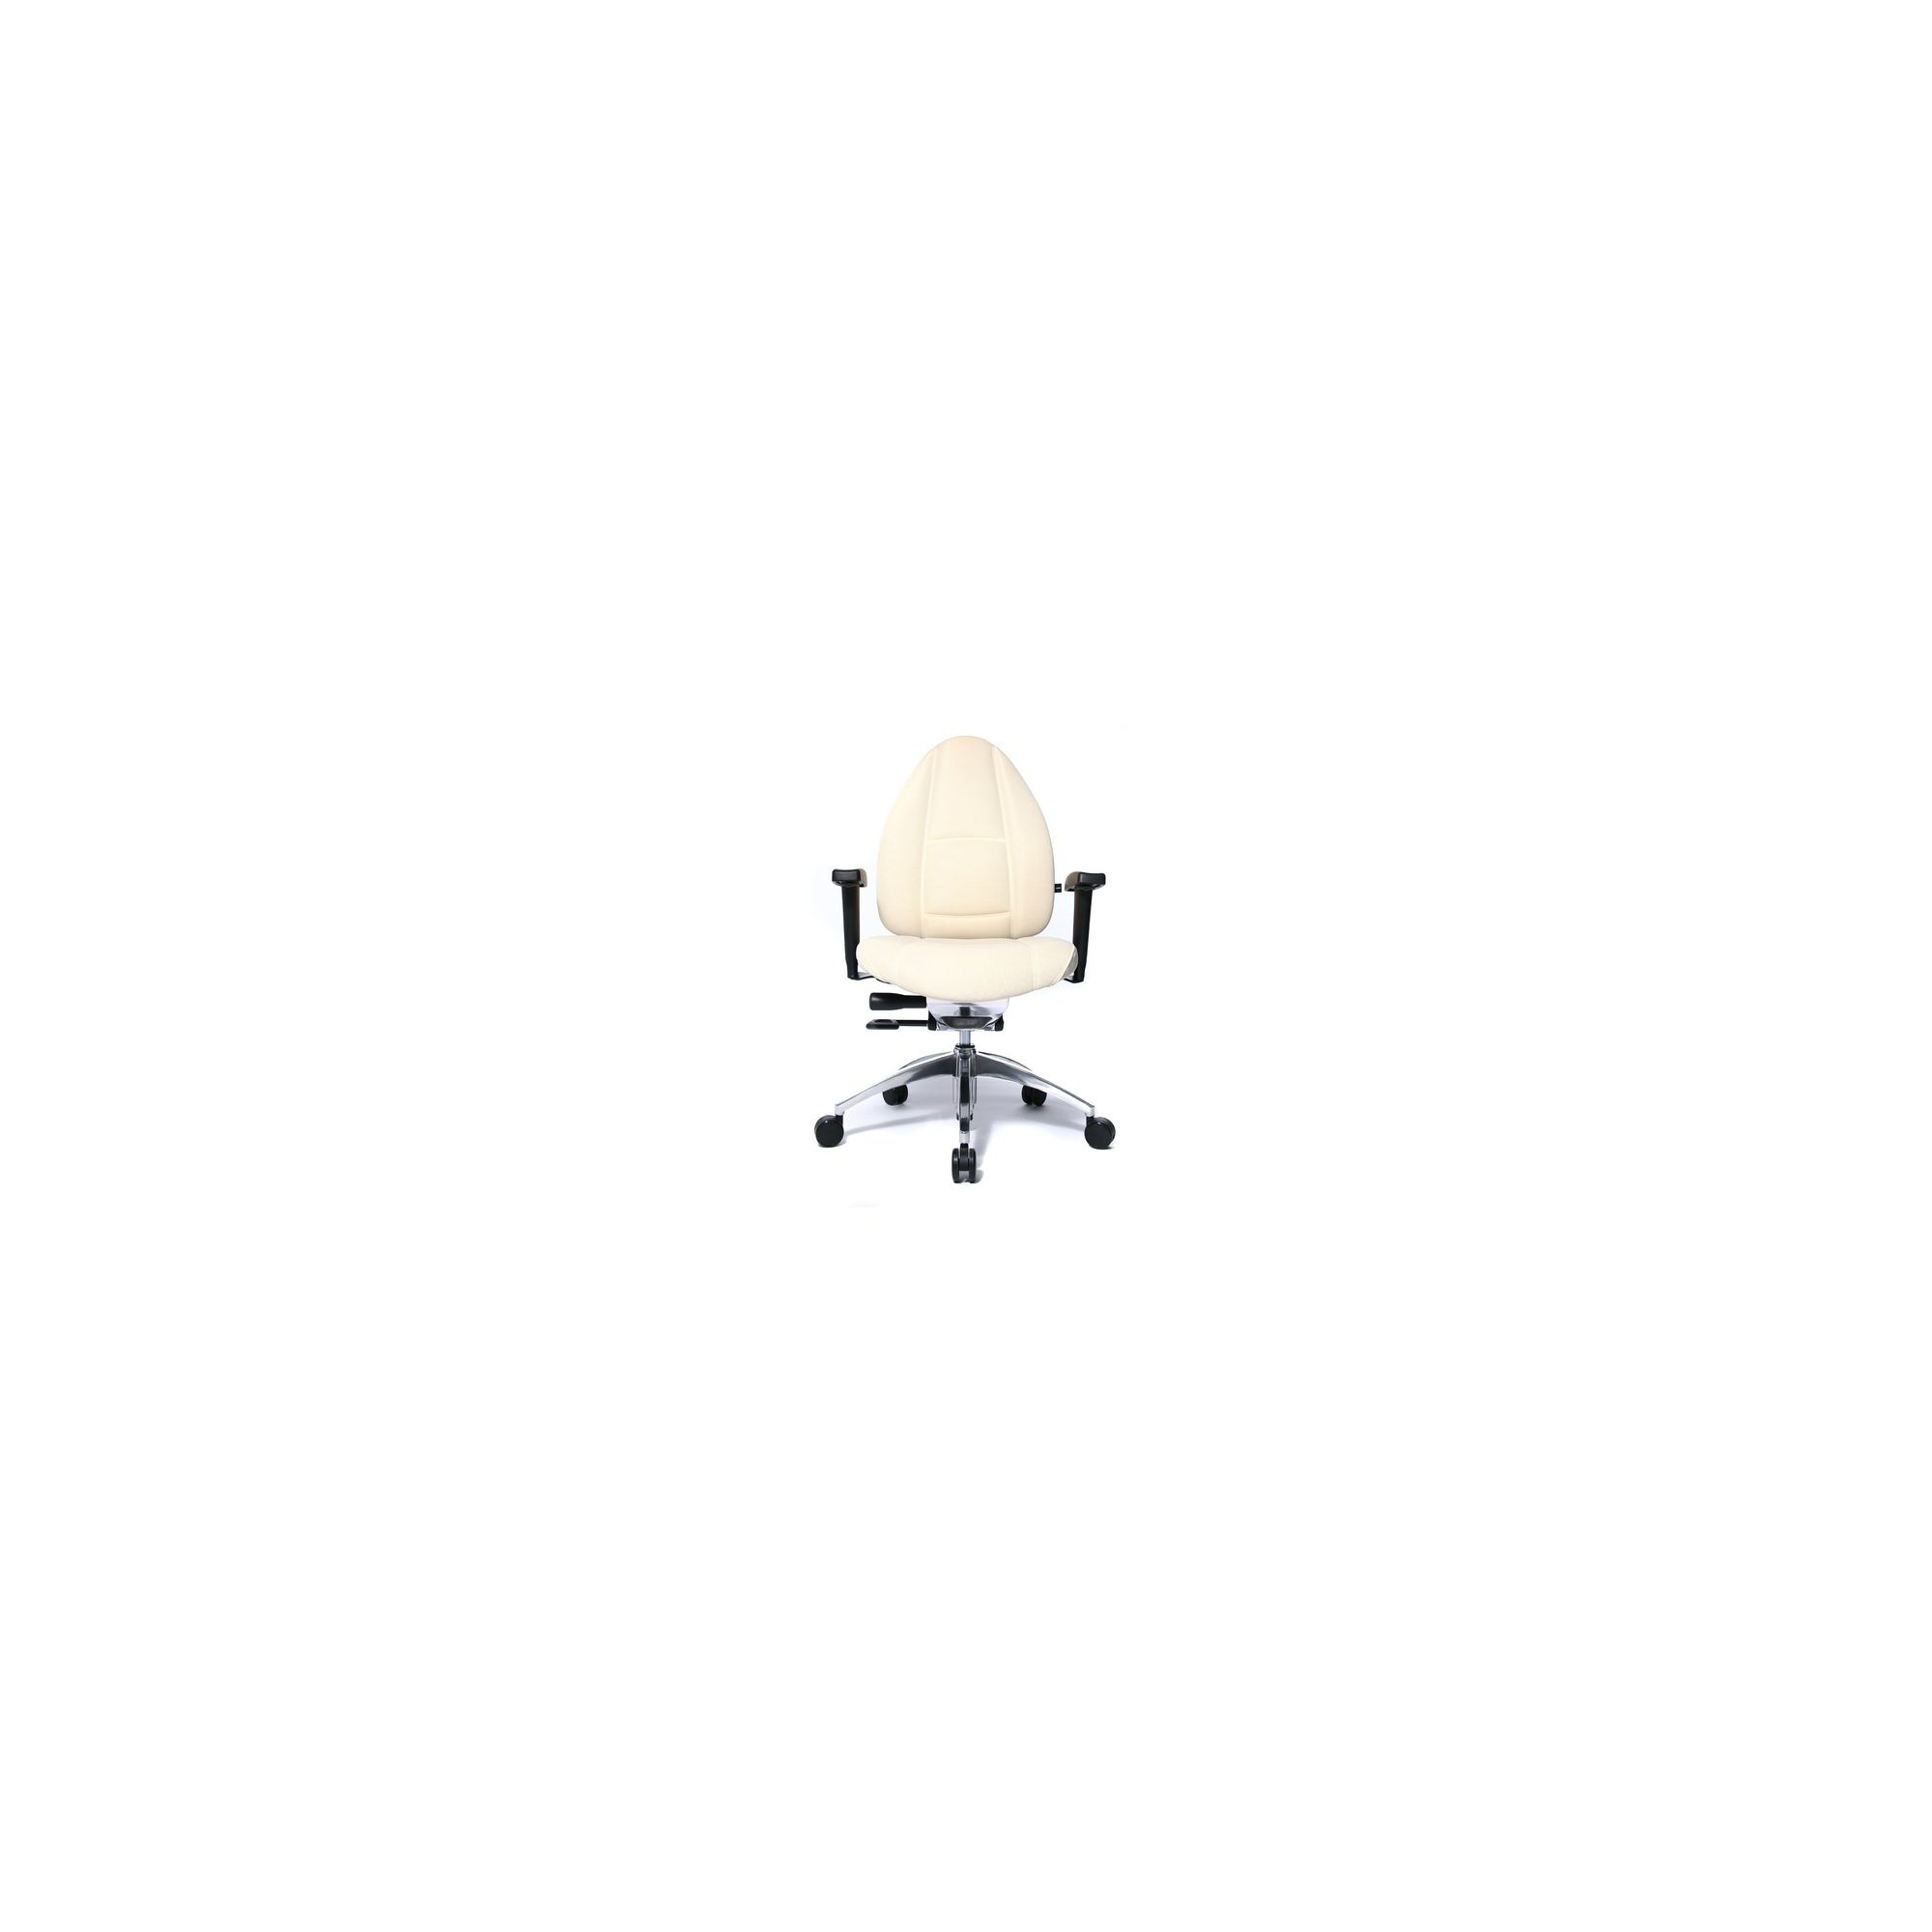 Topstar Open Base S Office Swivel Chair - Creme at Tesco Direct